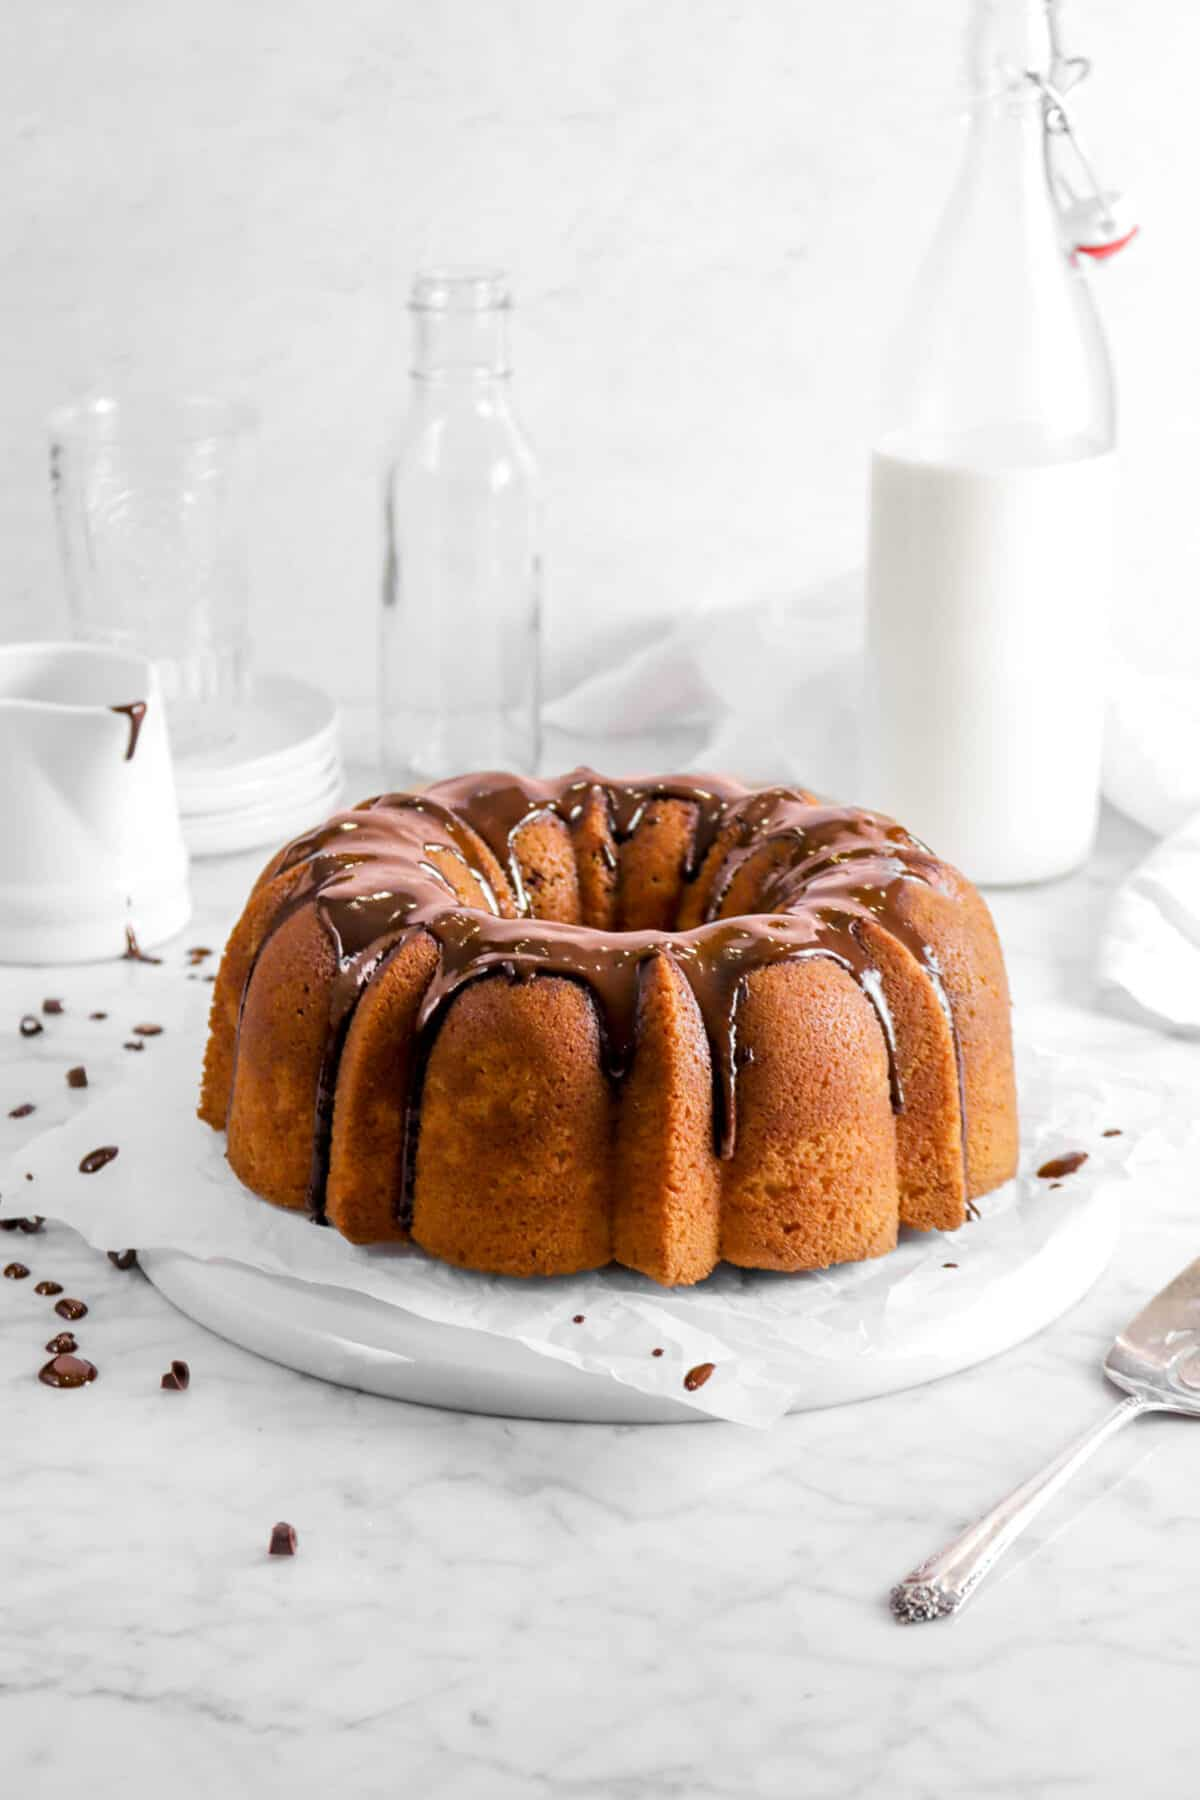 chocolate marble pound cake with chocolate ganache dripping on parchment paper with glass of milk, napkin, and two empty glasses